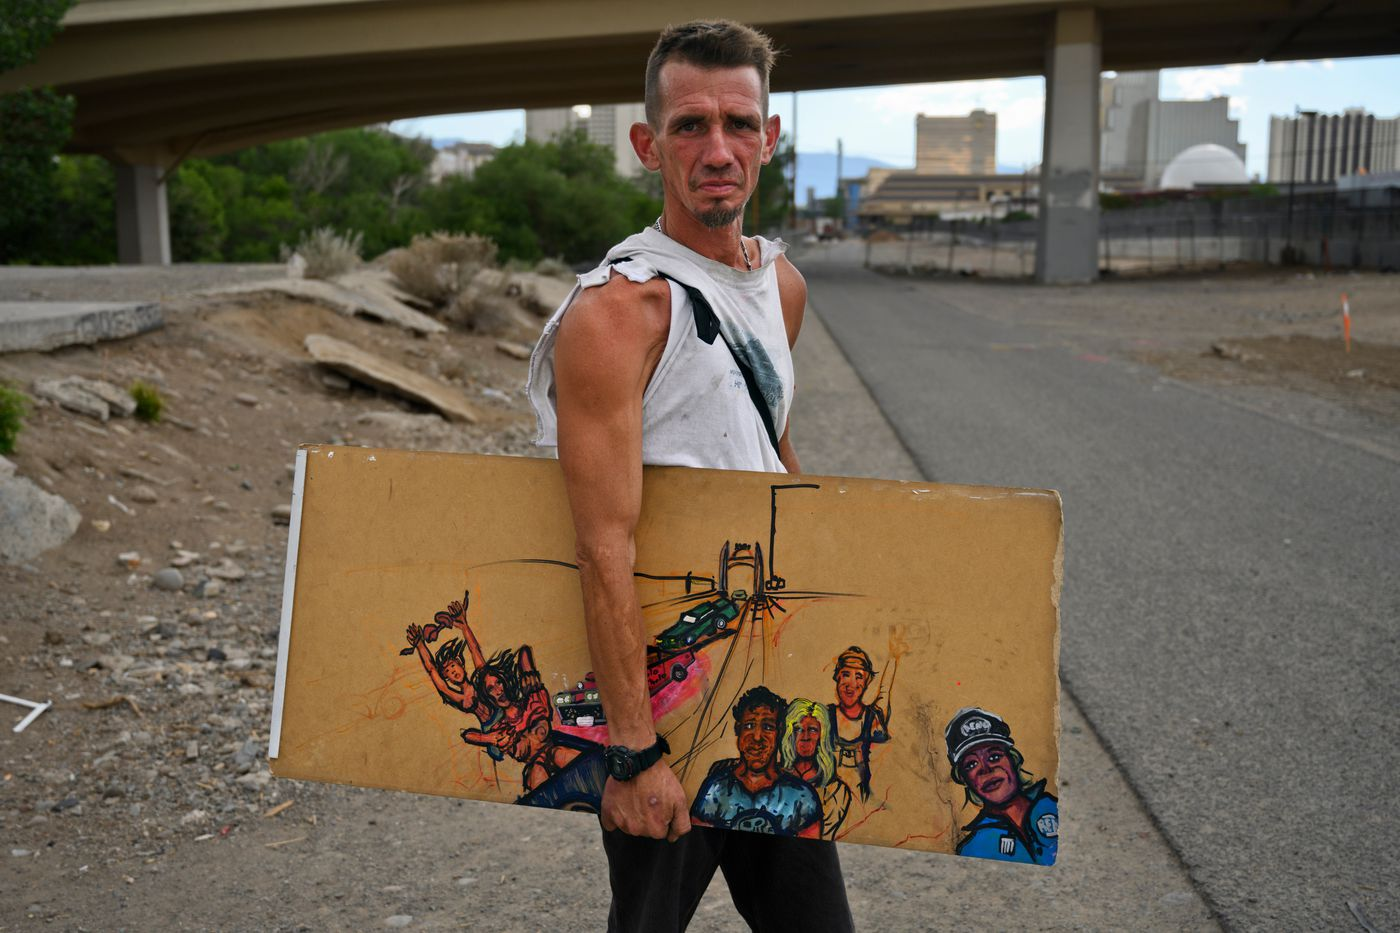 Matthew Tittor holds his artwork near the Wells Avenue Bridge over the Truckee River on June 23, 2021. The area was the site of a large homeless encampment before it was cleared by the city. Tittor, who camped nearby, said he had no interest in staying at the Nevada CARES Campus. (Marc Lester / ADN)